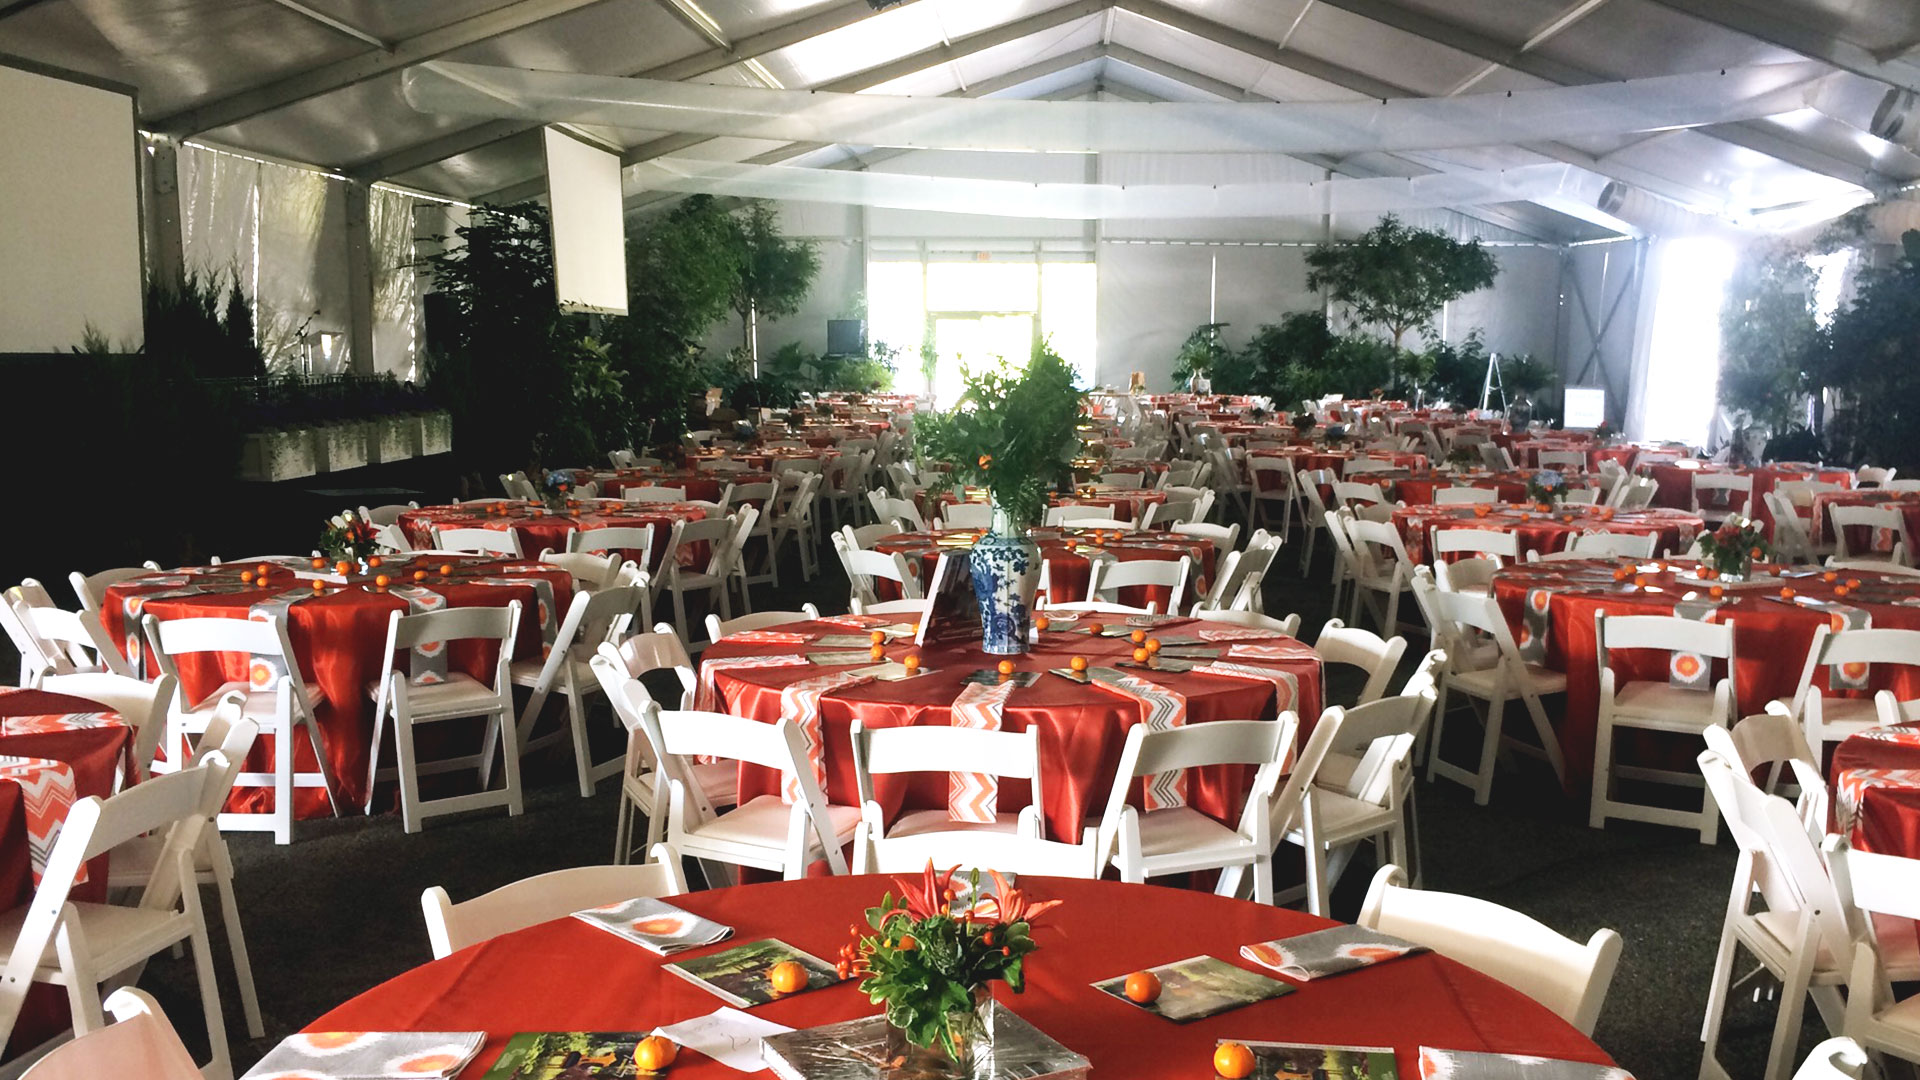 Rental Chairs And Tables Aaa Rents Event Services Event Party Rentals